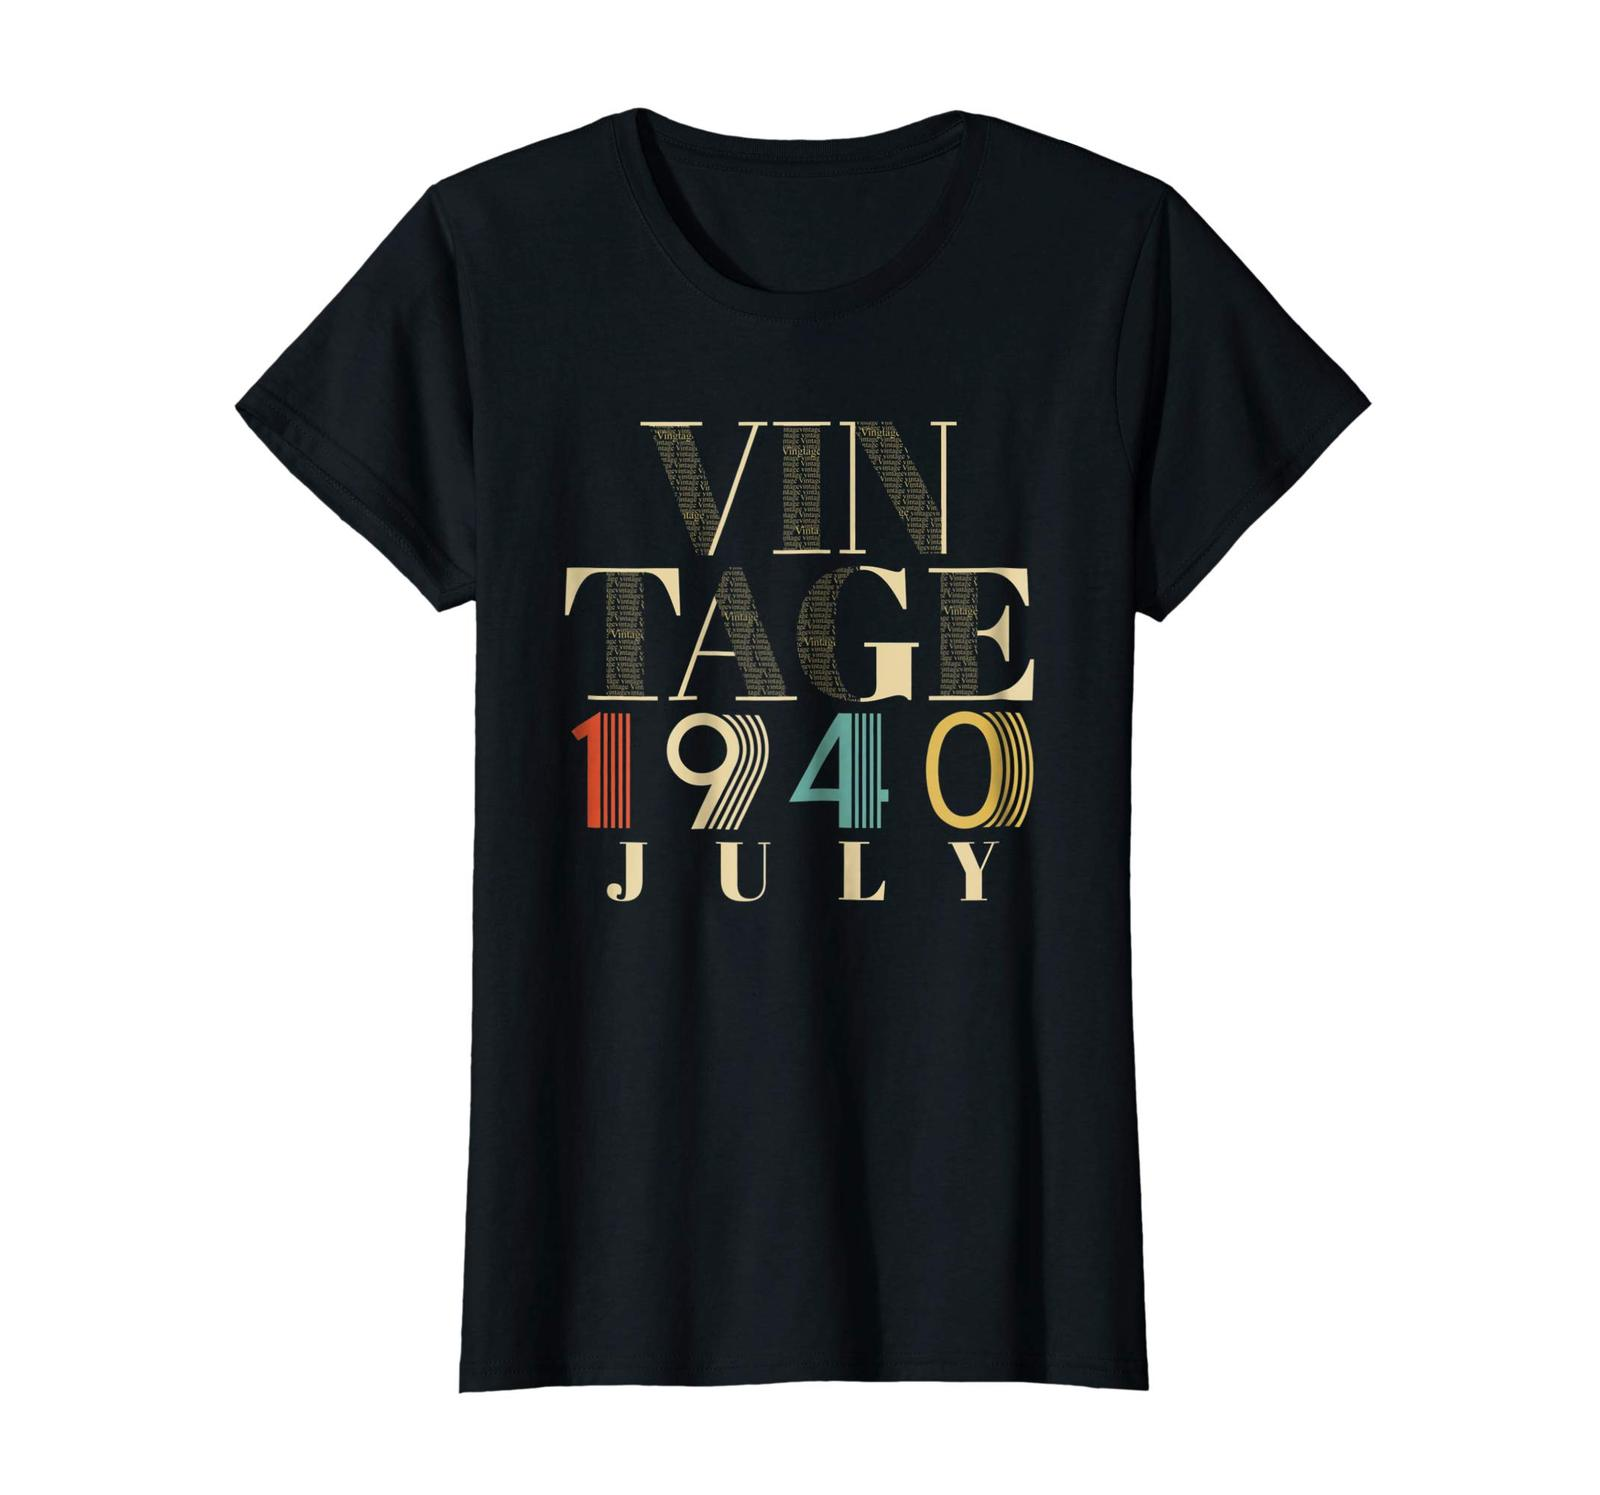 Brother Shirts - Retro Classic Vintage Born In JULY 1940 Aged 78 Years Old Wowen image 2